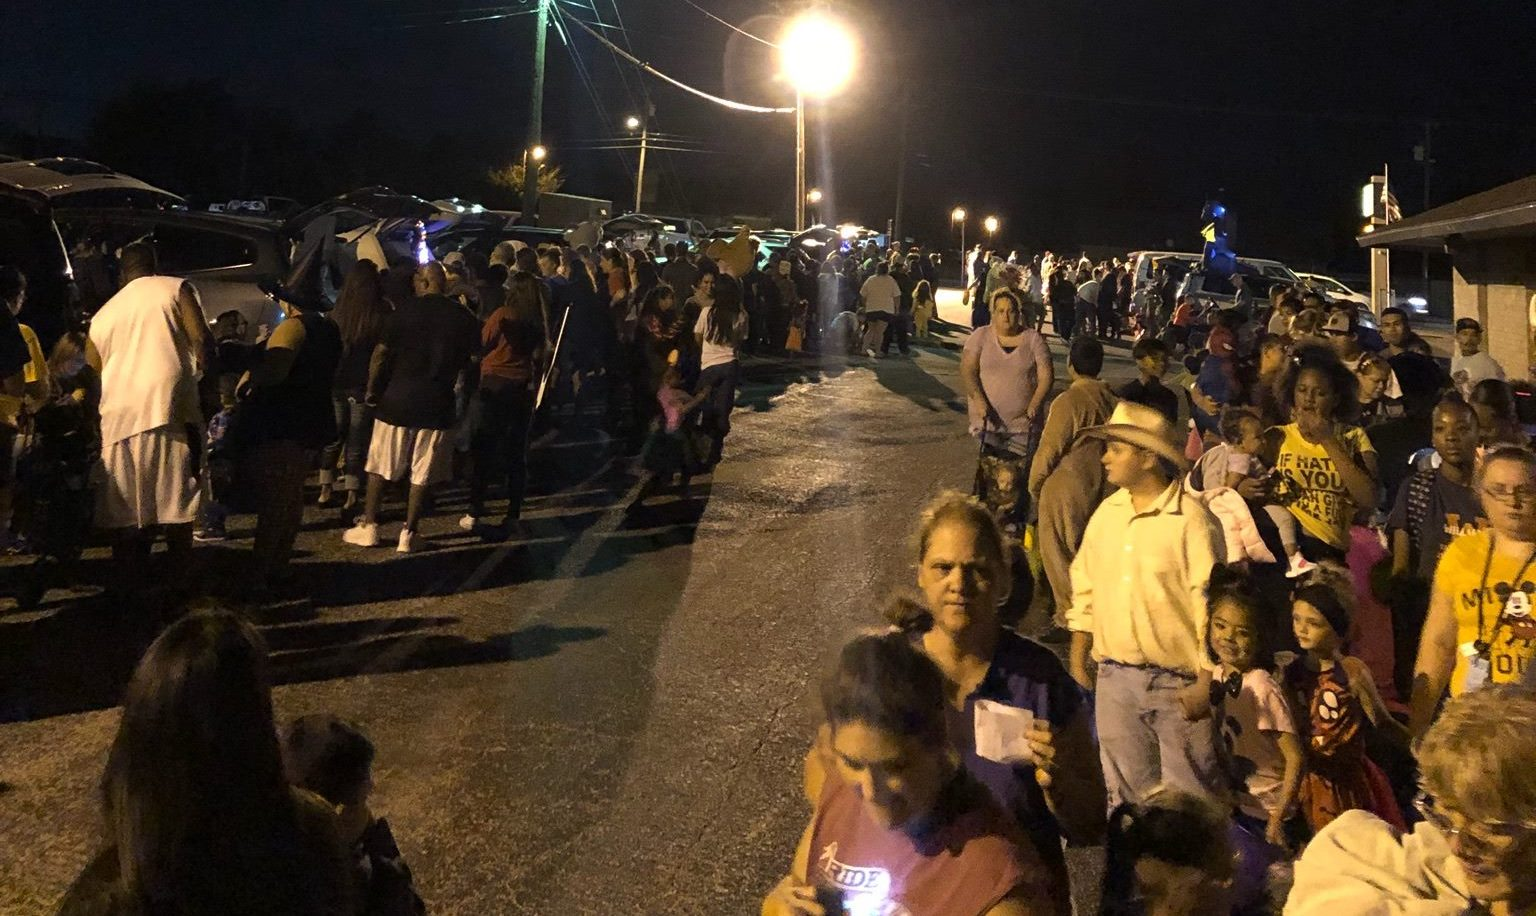 Texas church sets up 12 Bible studies at Trunk or Treat, 59 want to know more